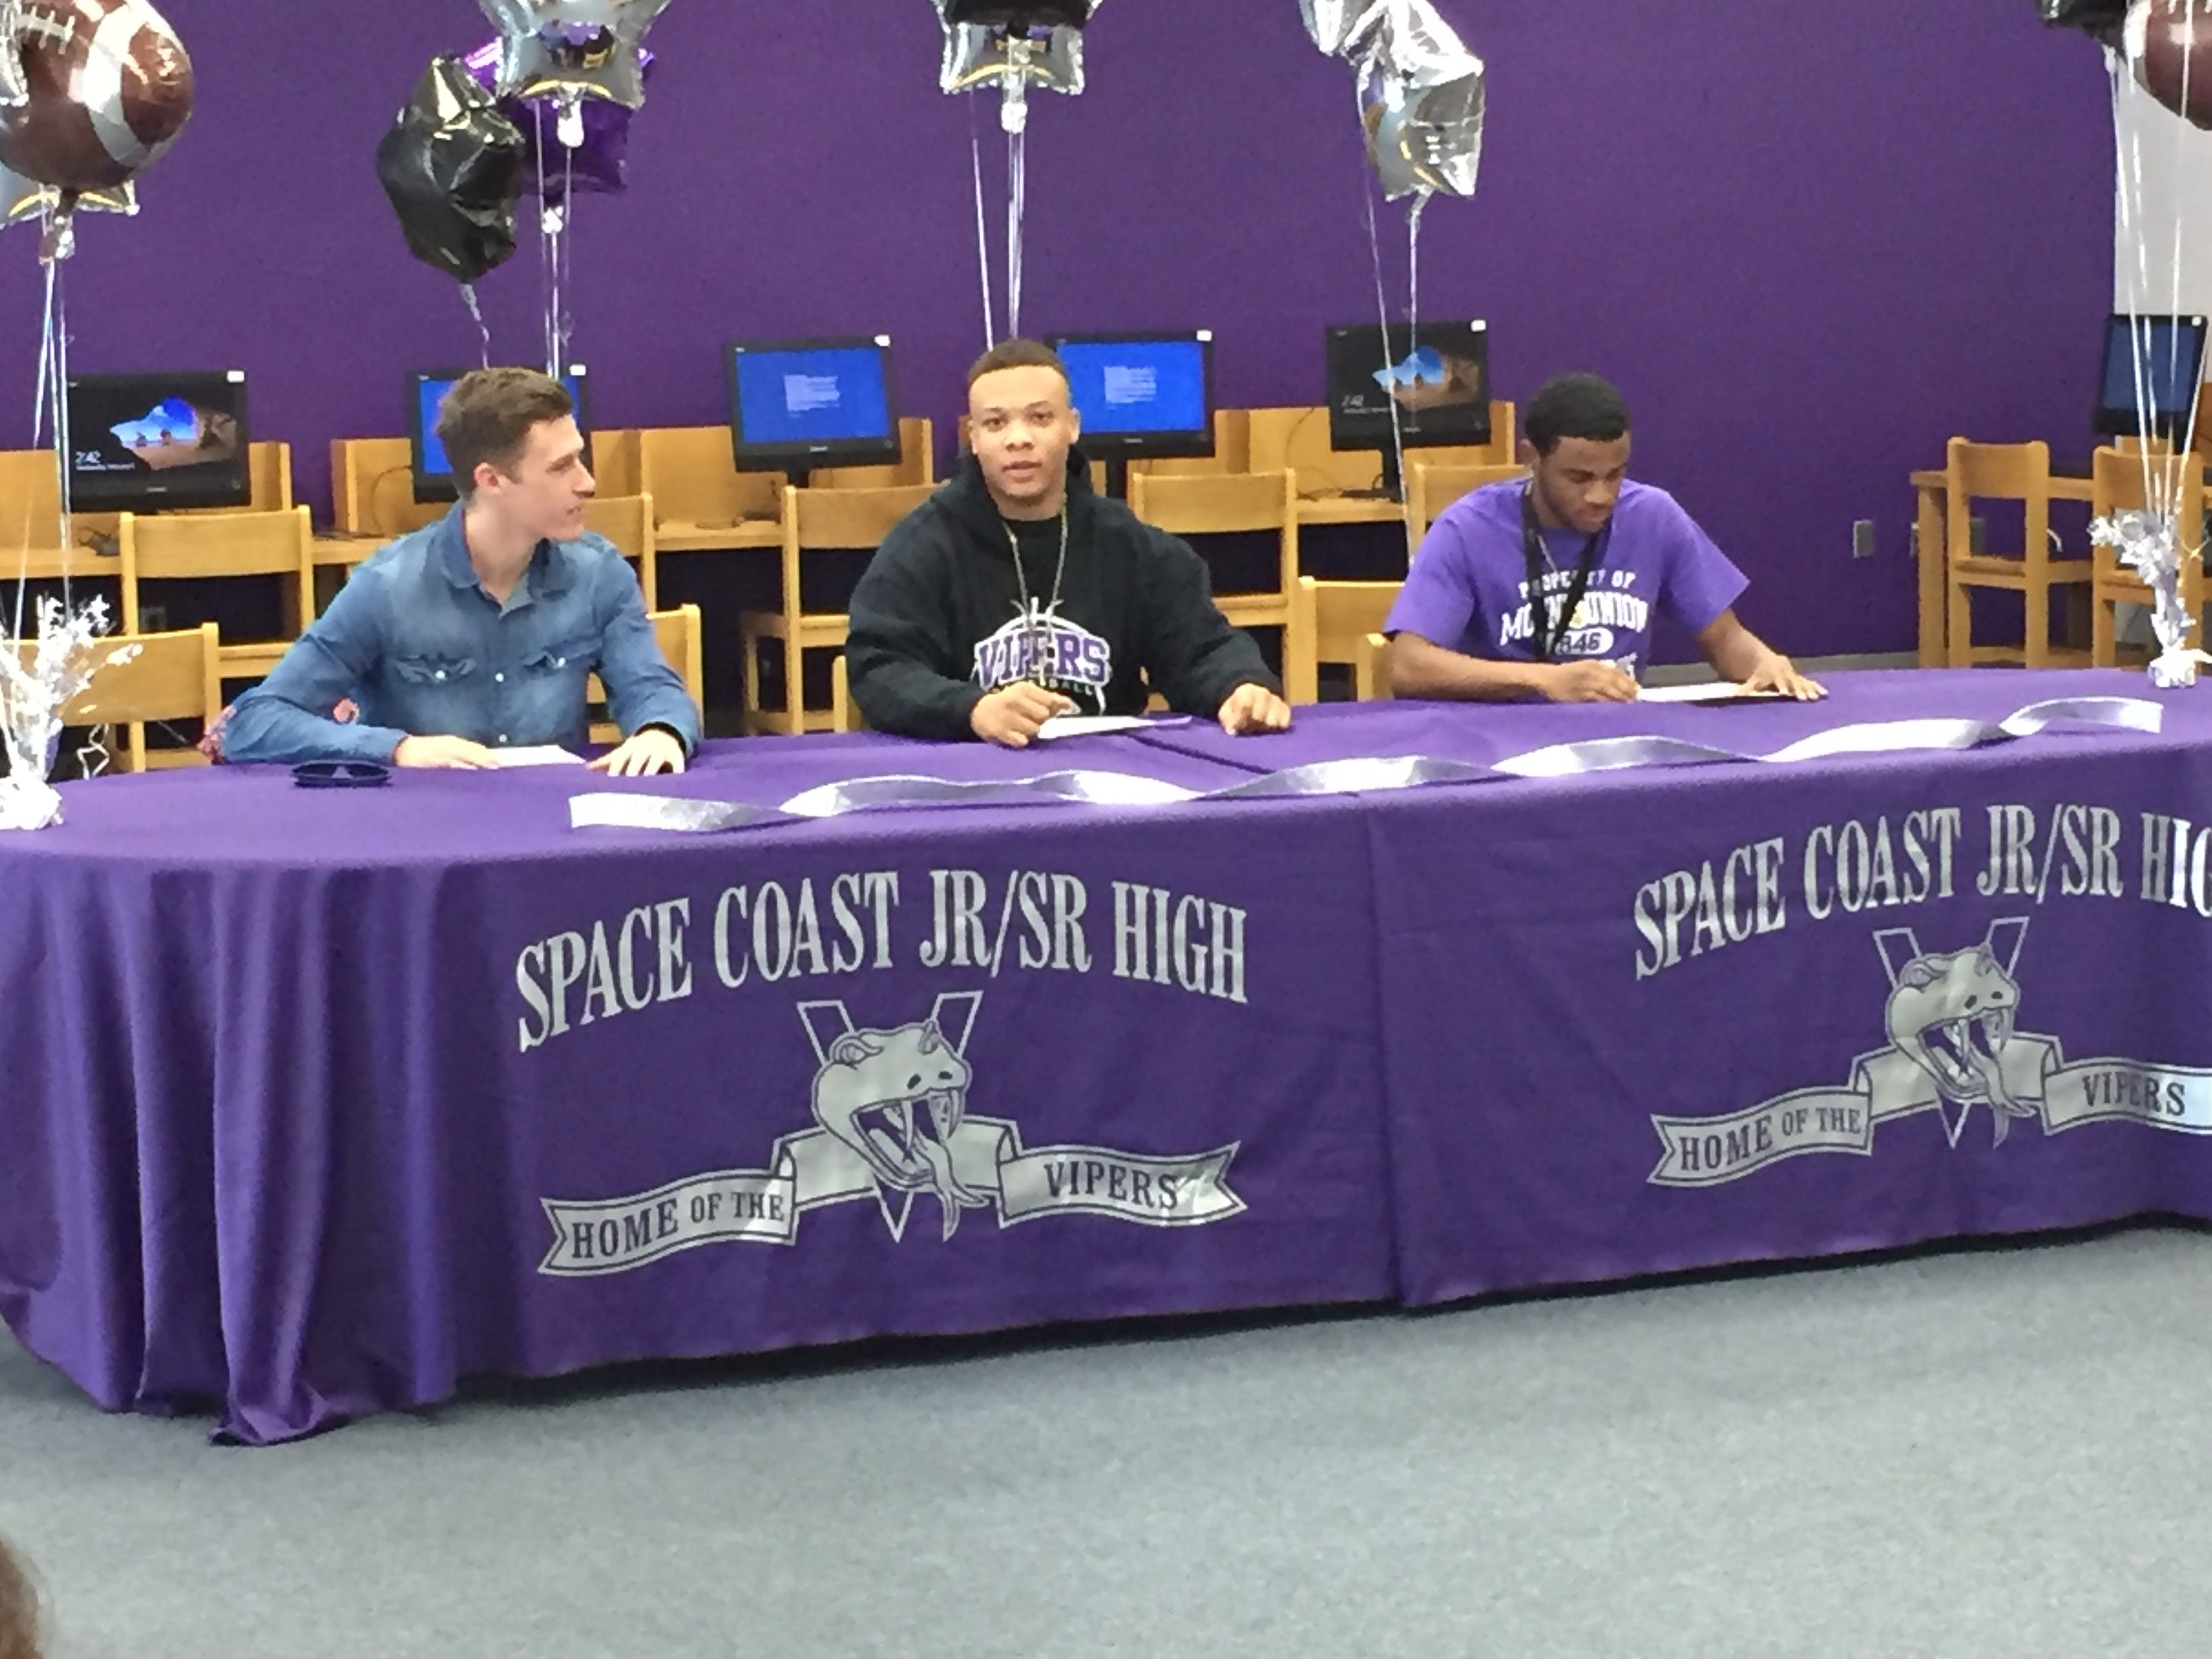 National Signing Day at Space Coast for (left to right) Michael Barton, T.Jay Mitchell and Devontae Shingles.